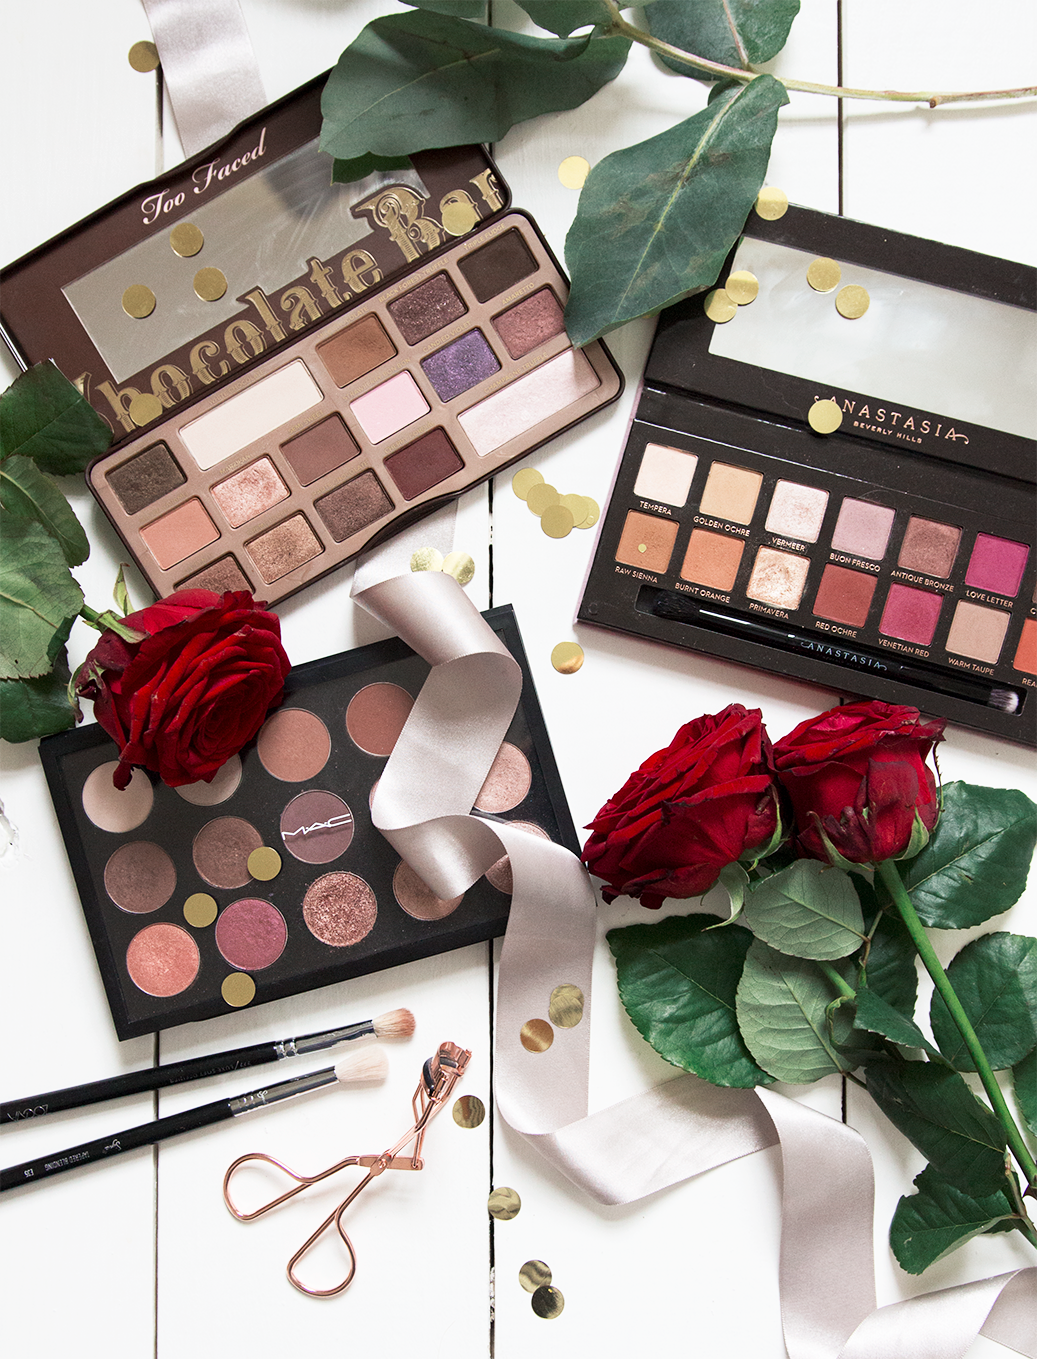 three autumnal eyeshadow palettes autumnal eyeshadows autumn eyeshadows